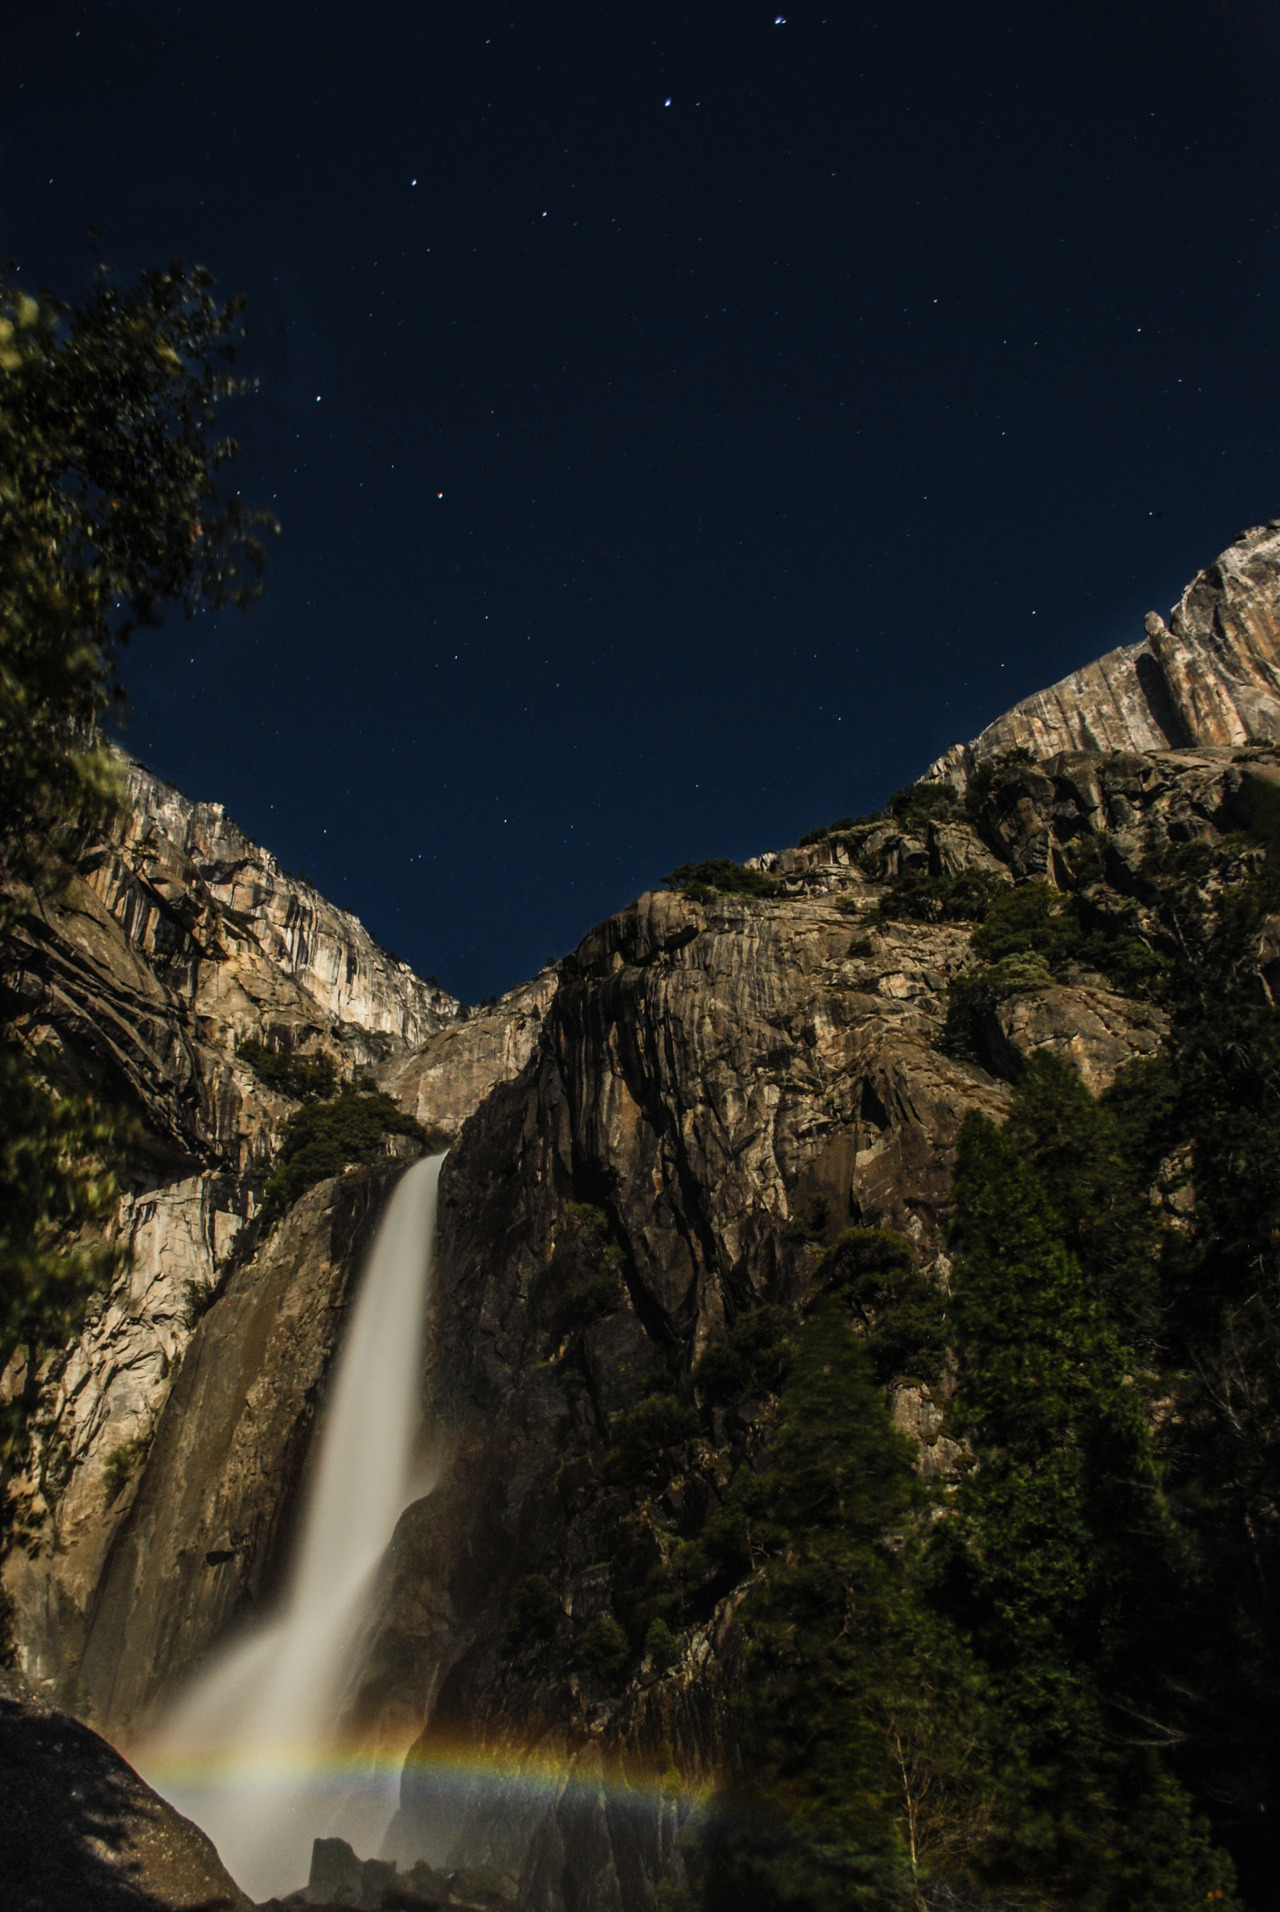 photojojo:  Moonbow: a rainbow made by the light of the moon. Our pal Mcheung tells us all about how he shot this one this past weekend!  This weekend was the best moonbow-photographing weekend of the year!   A moonbow is essentially the same thing as a rainbow, except that it happens at night.  It's a pretty rare phenomenon that only occurs in a few places on earth.  Photos of Super Moon Rainbows